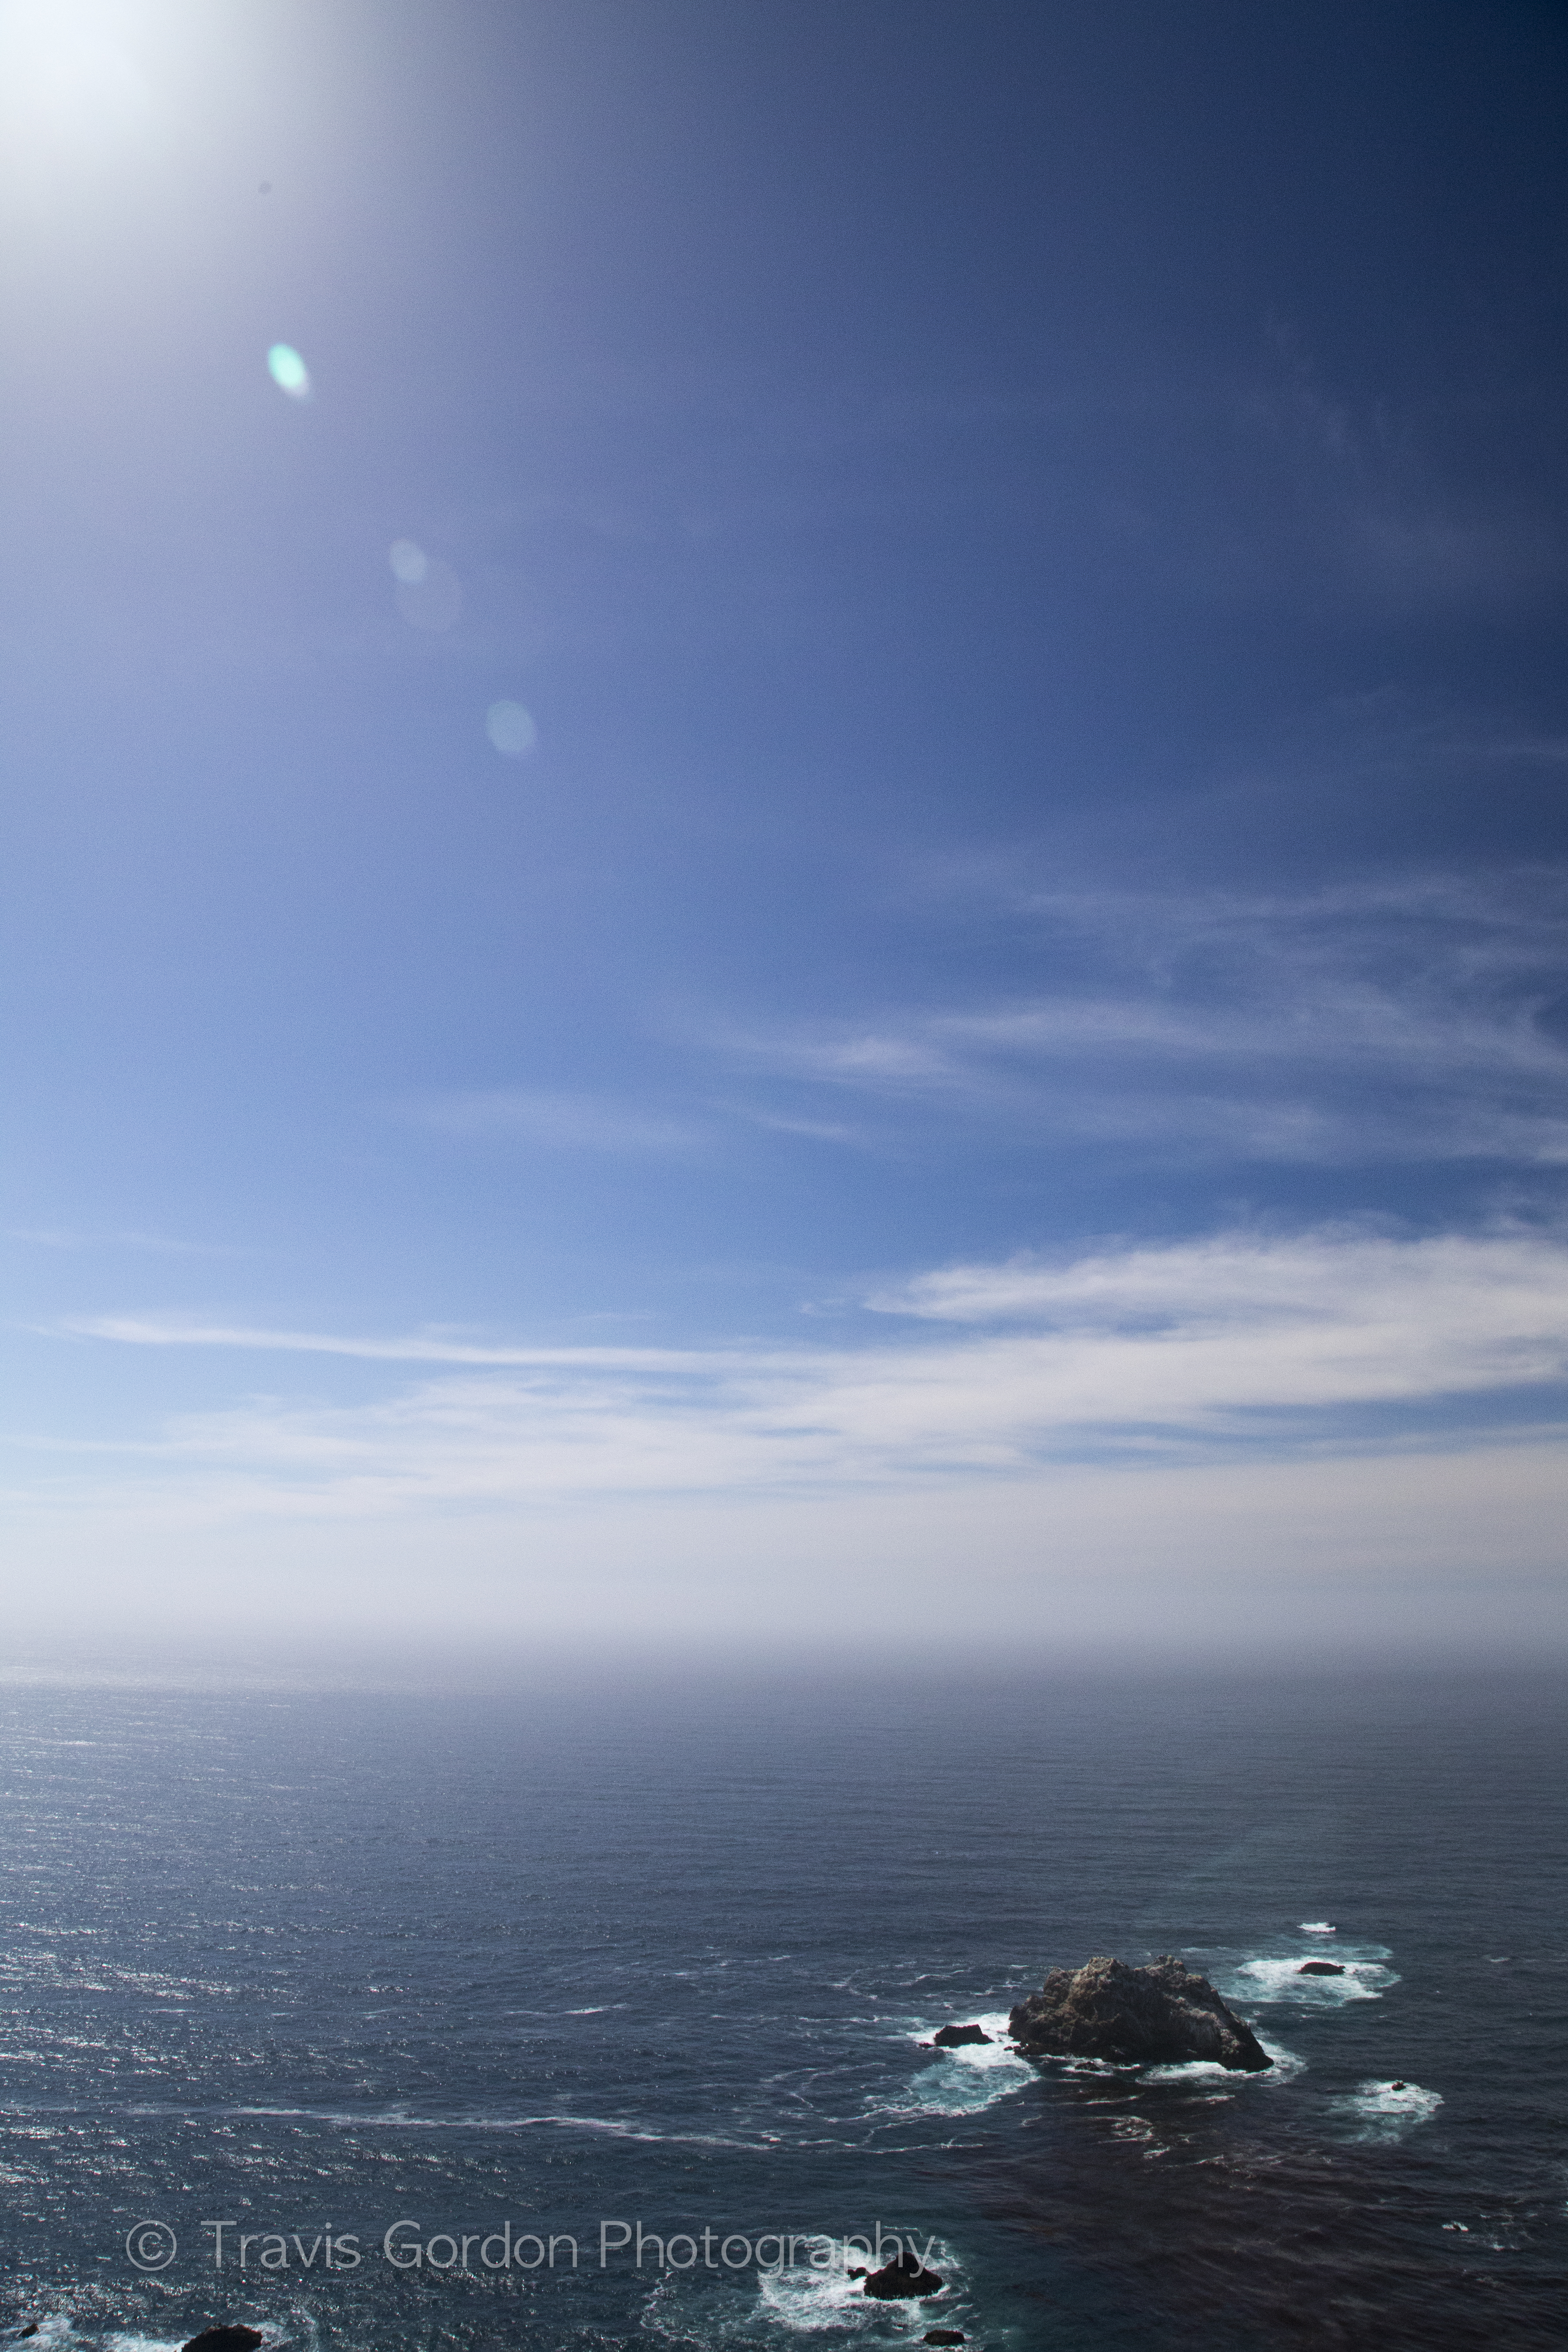 Overlooking the Pacific